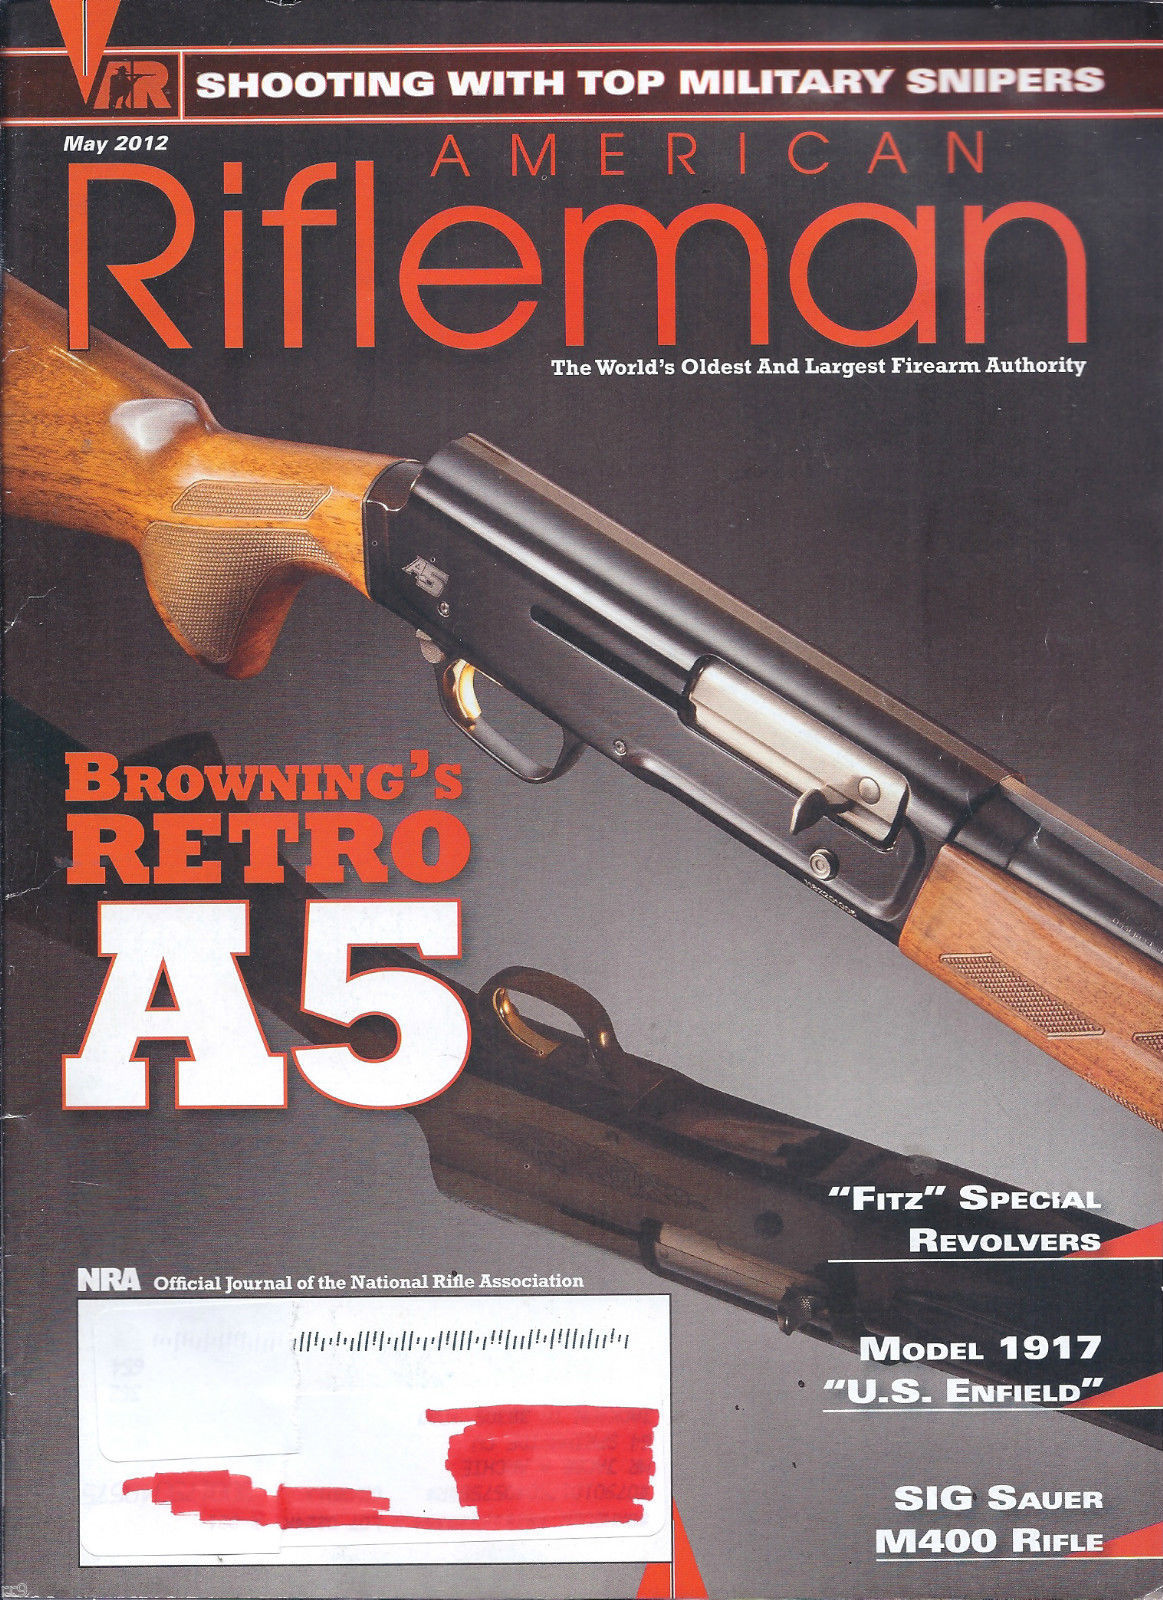 Primary image for The American Rifleman Magazine May 2012